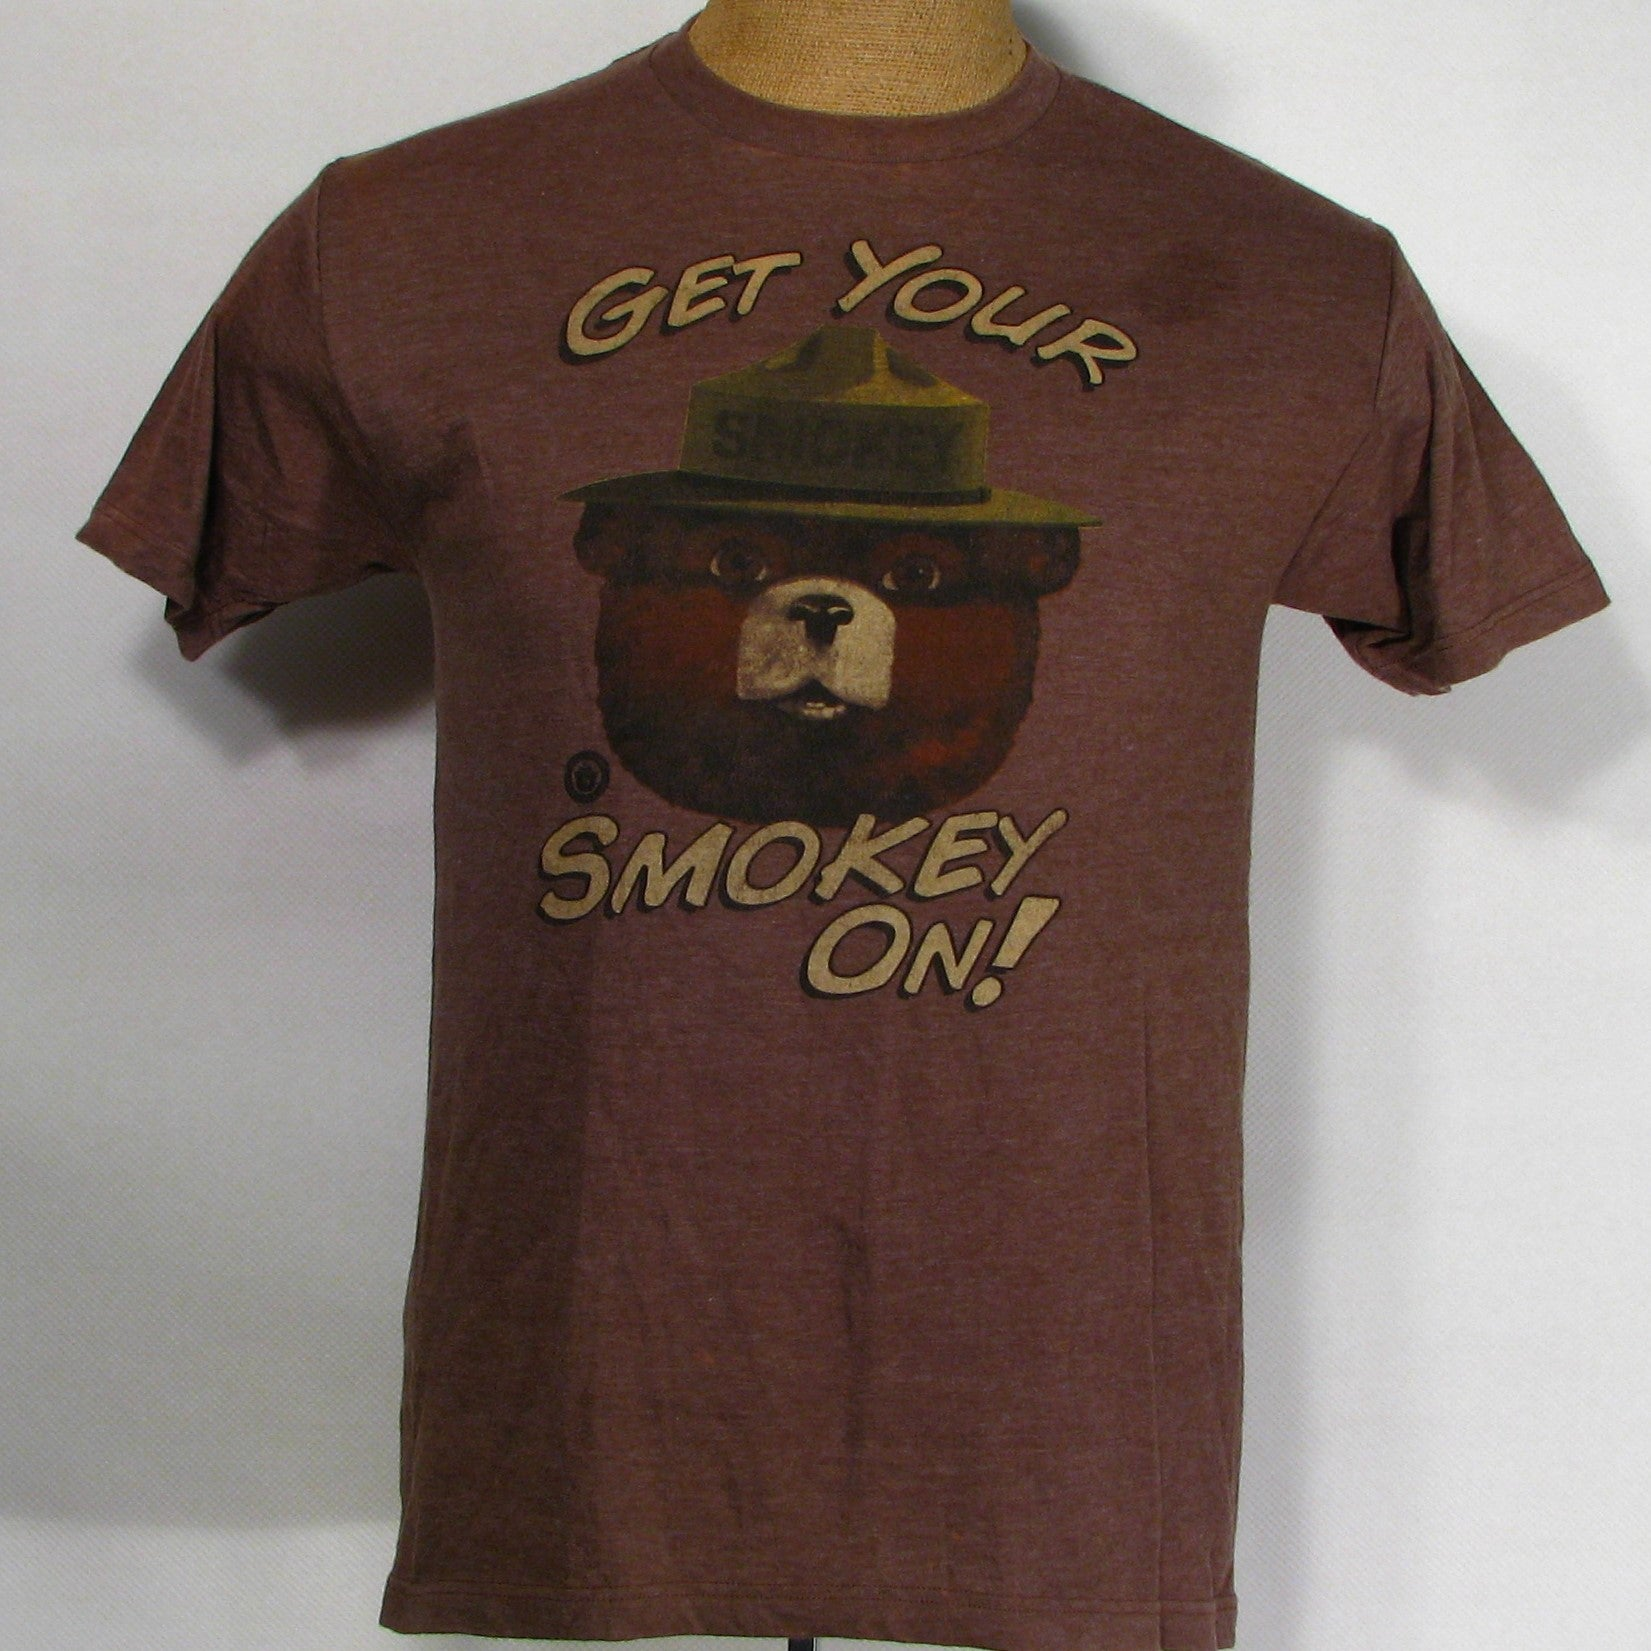 Get Your Smokey On ! T-Shirt